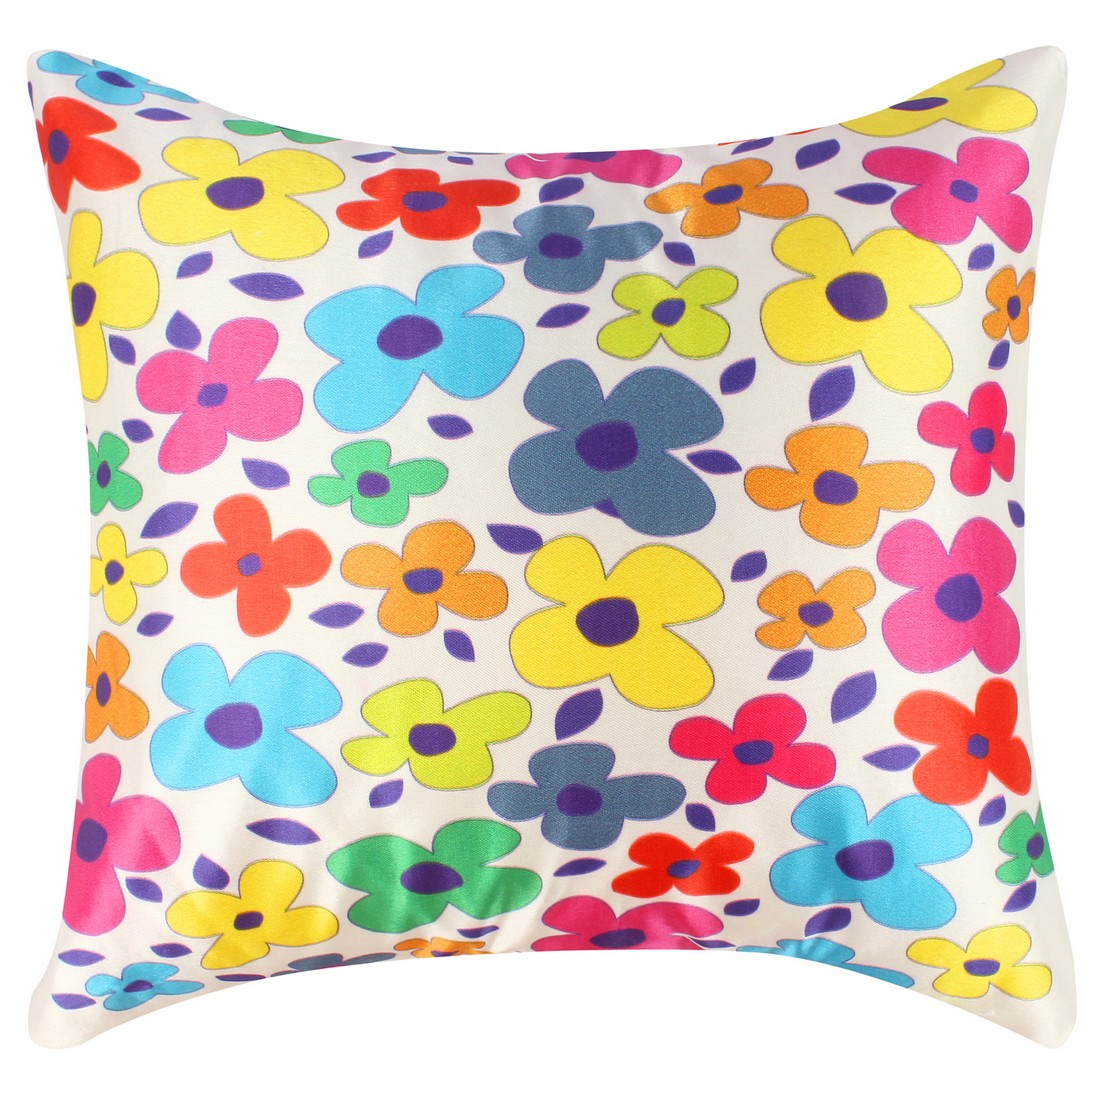 "Sattva Premium Digital Printed Cushion Cover CU011 With Filler Multicolor - Size 12""x12"""